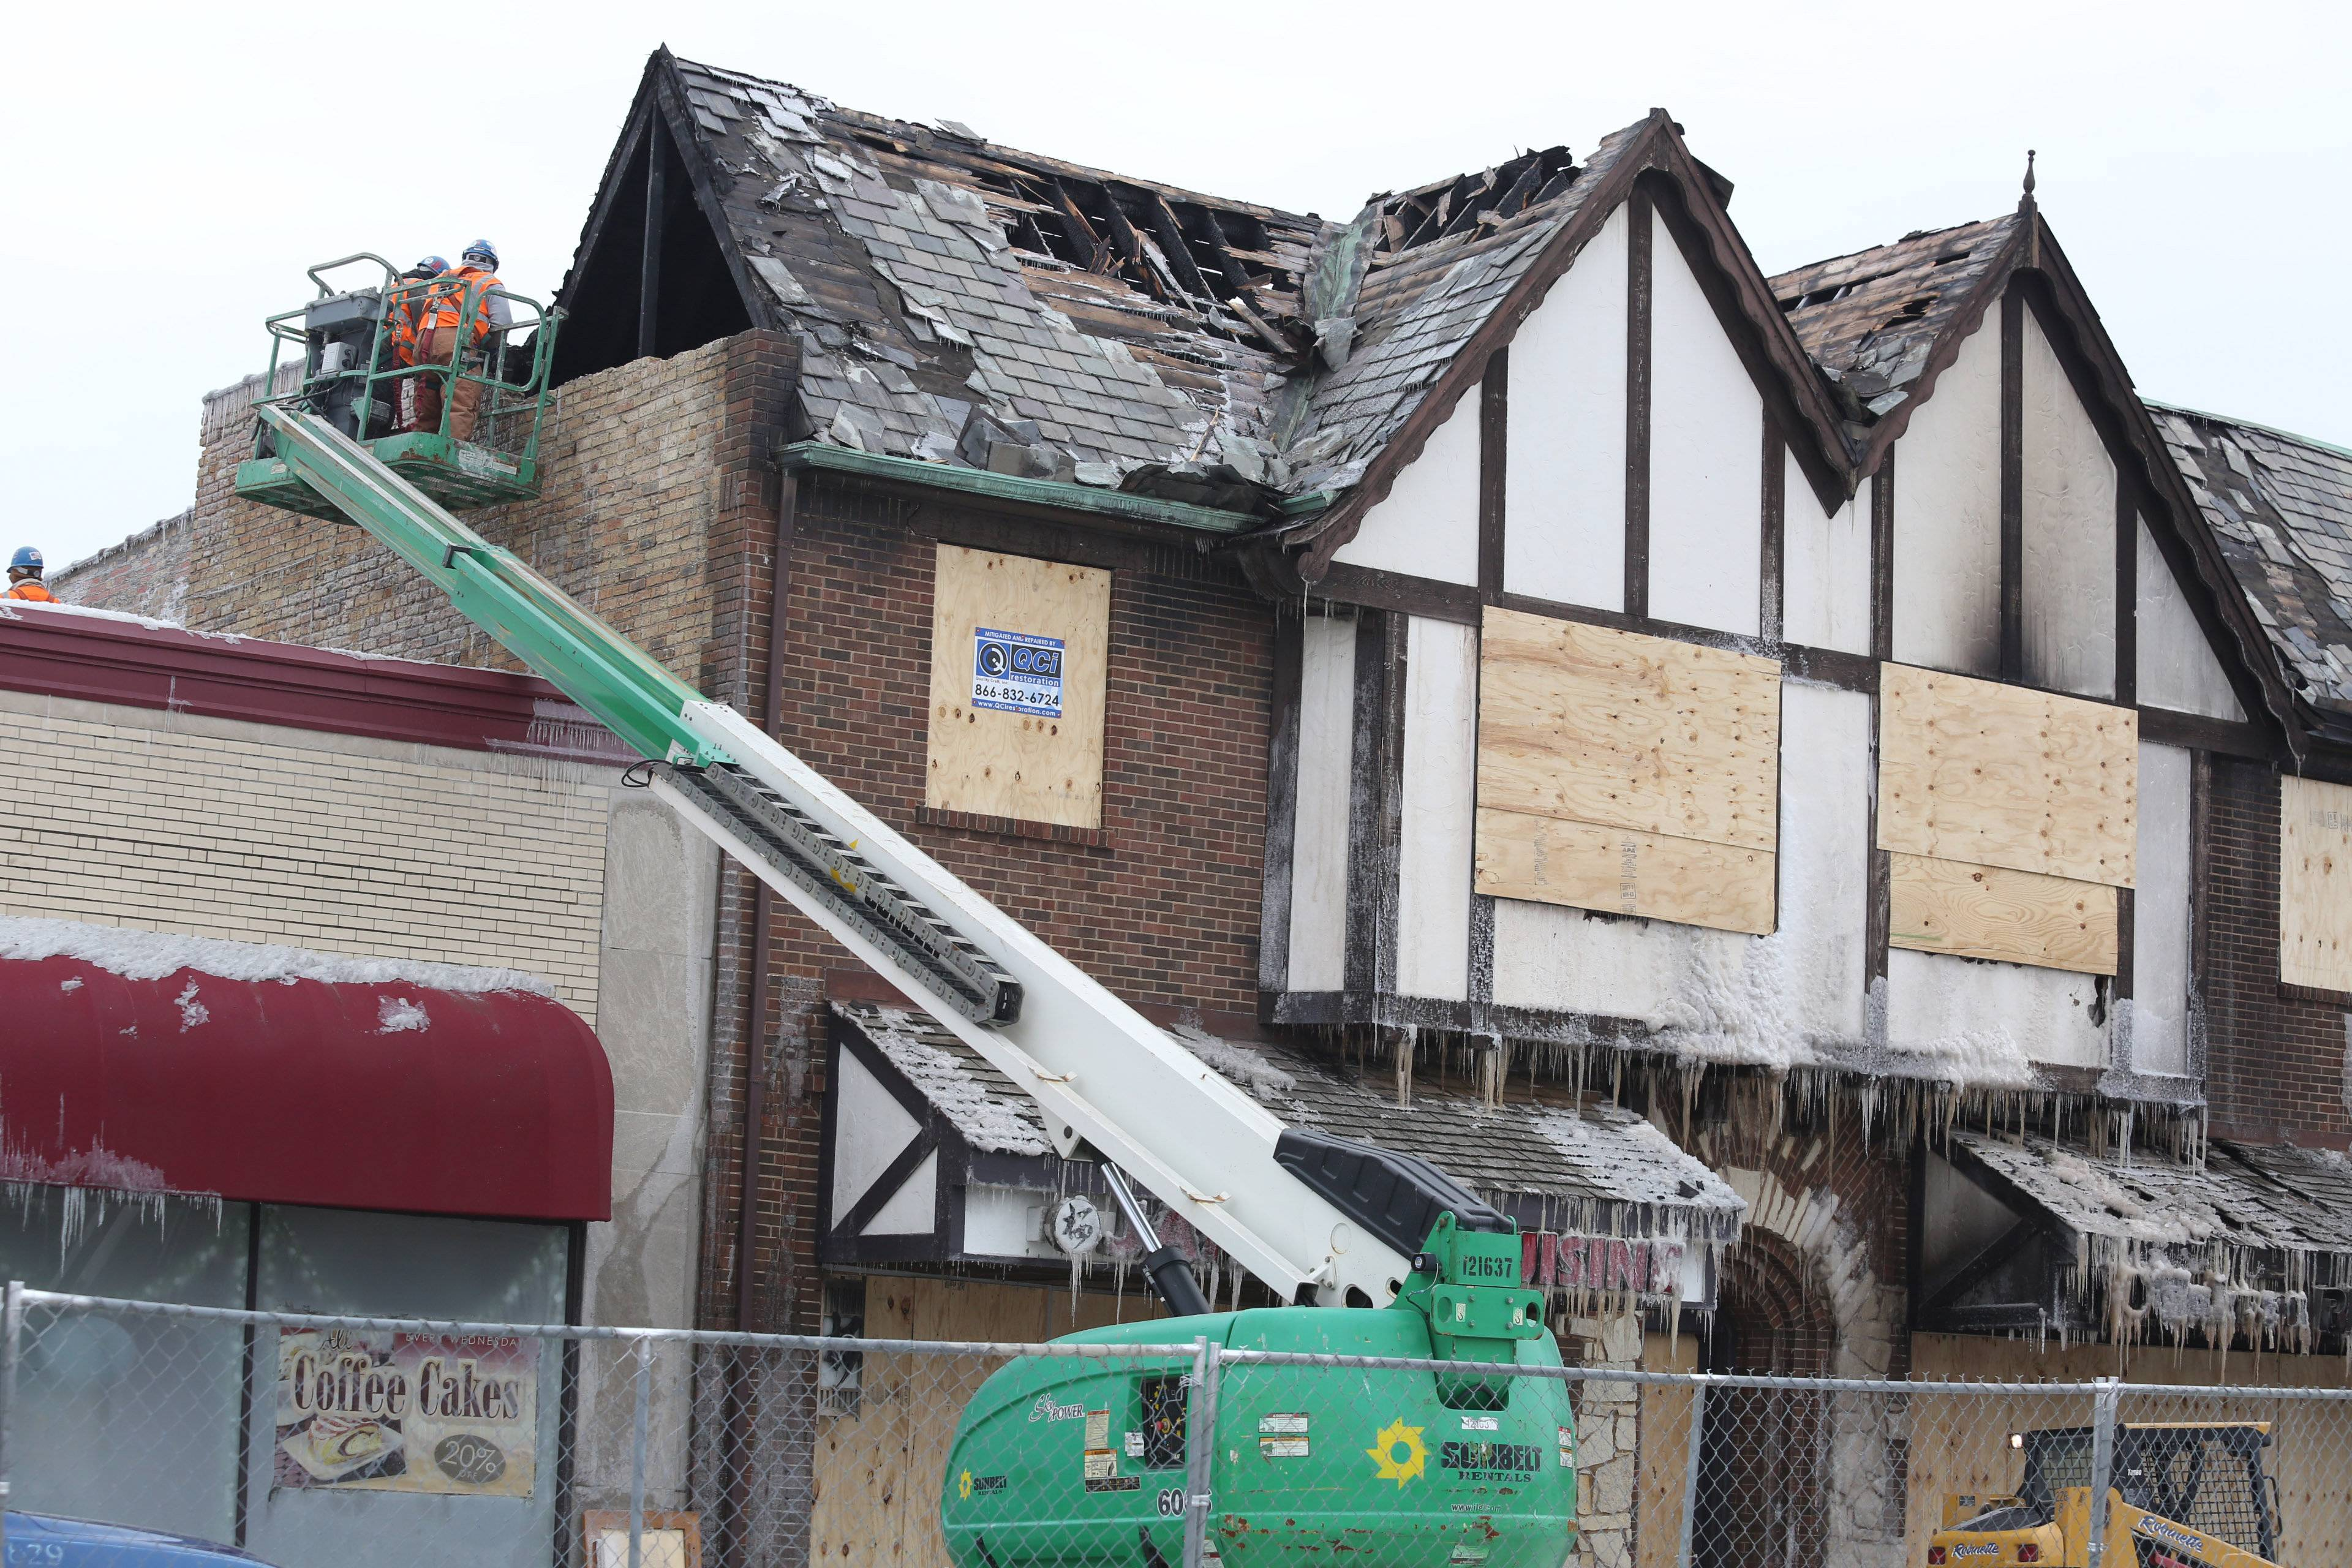 Workers begin to demolish a portion of a building in Mount Prospect Wednesday due to severe damages left by an early Sunday morning fire.